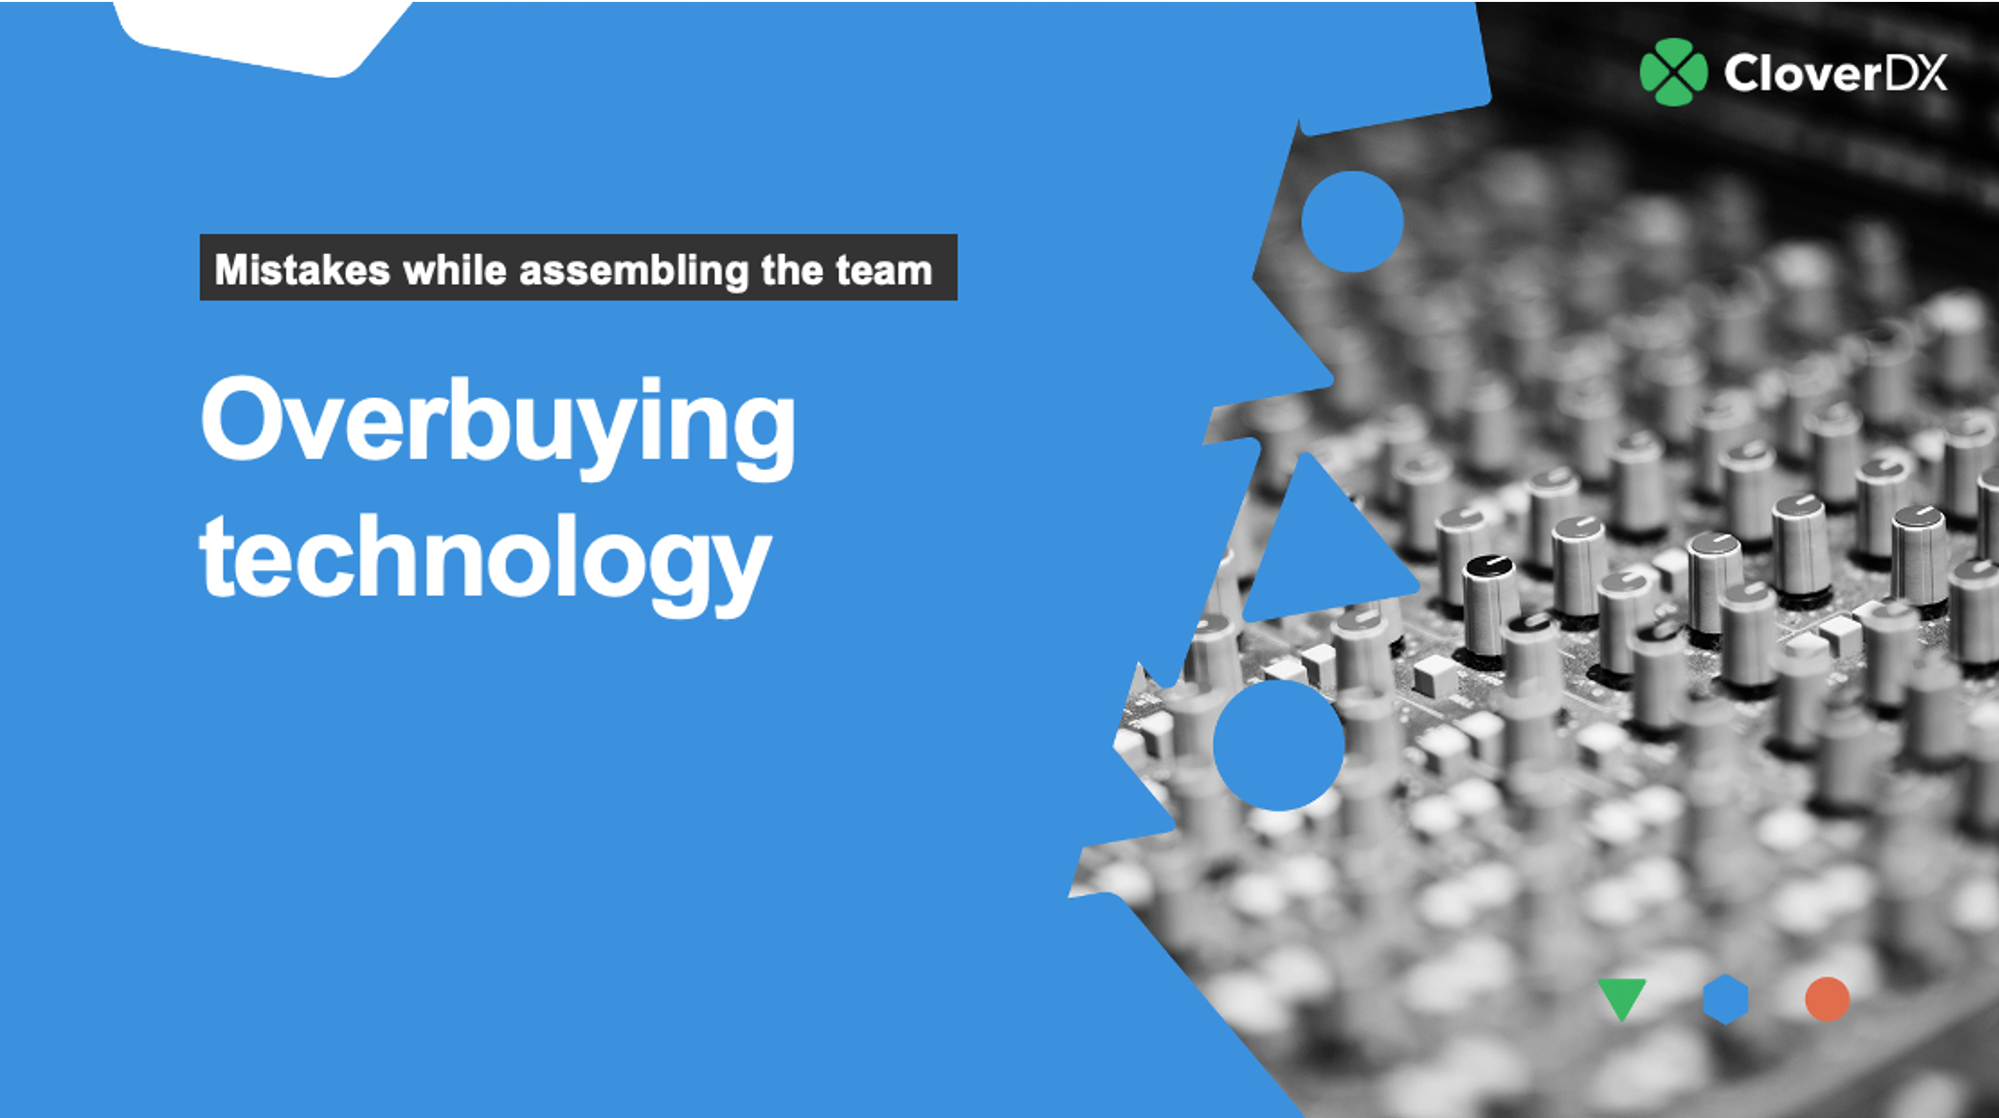 Overbuying technology